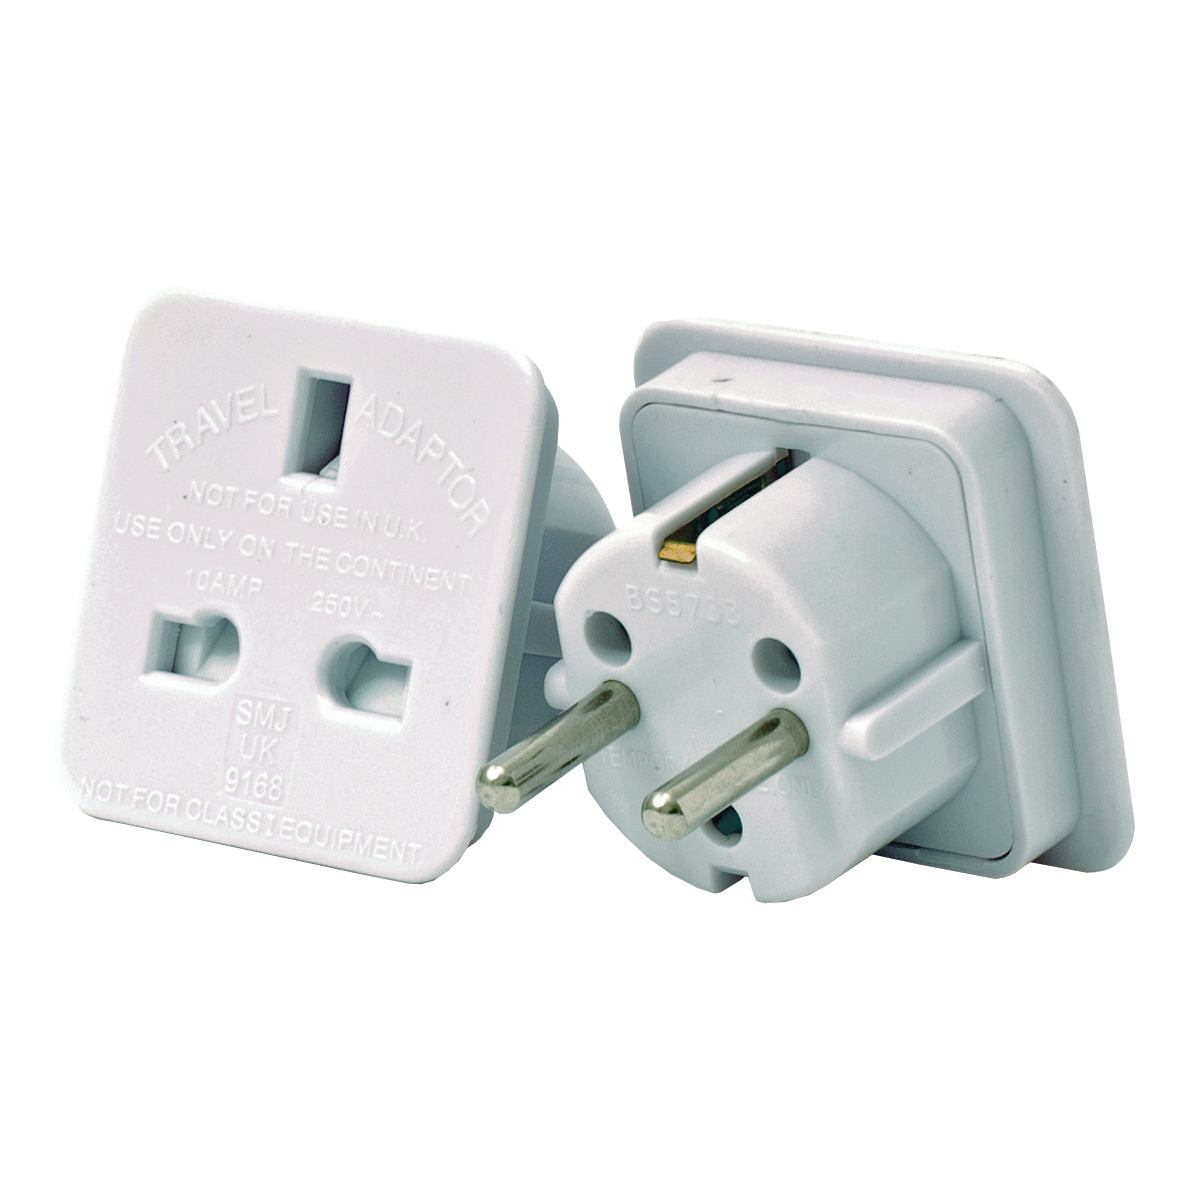 Cables / Leads / Plugs / Fuses UK to European Travel Adaptor [Pack 2]